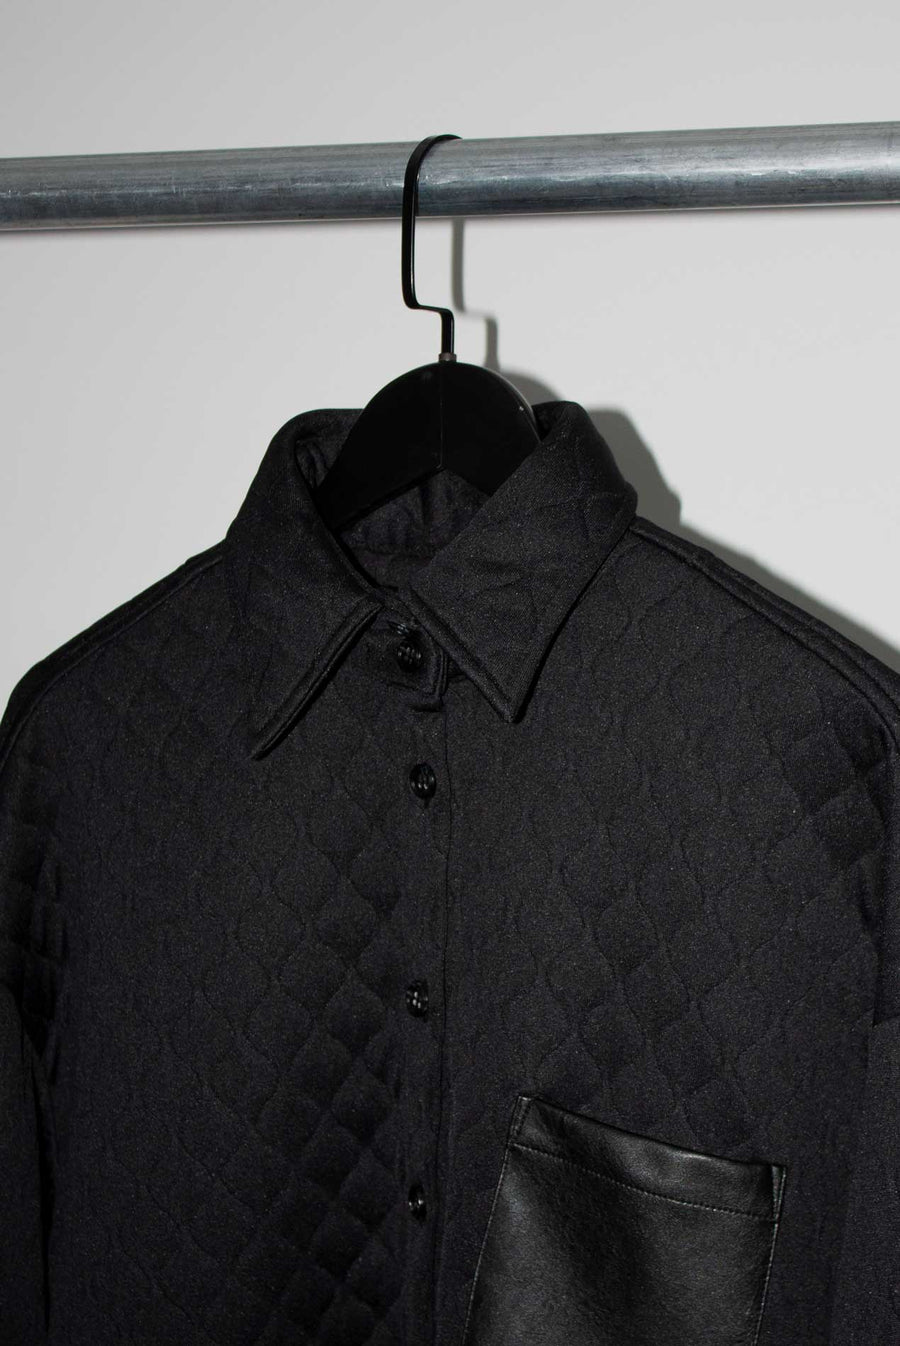 Simmons Shirt Jacket in Black